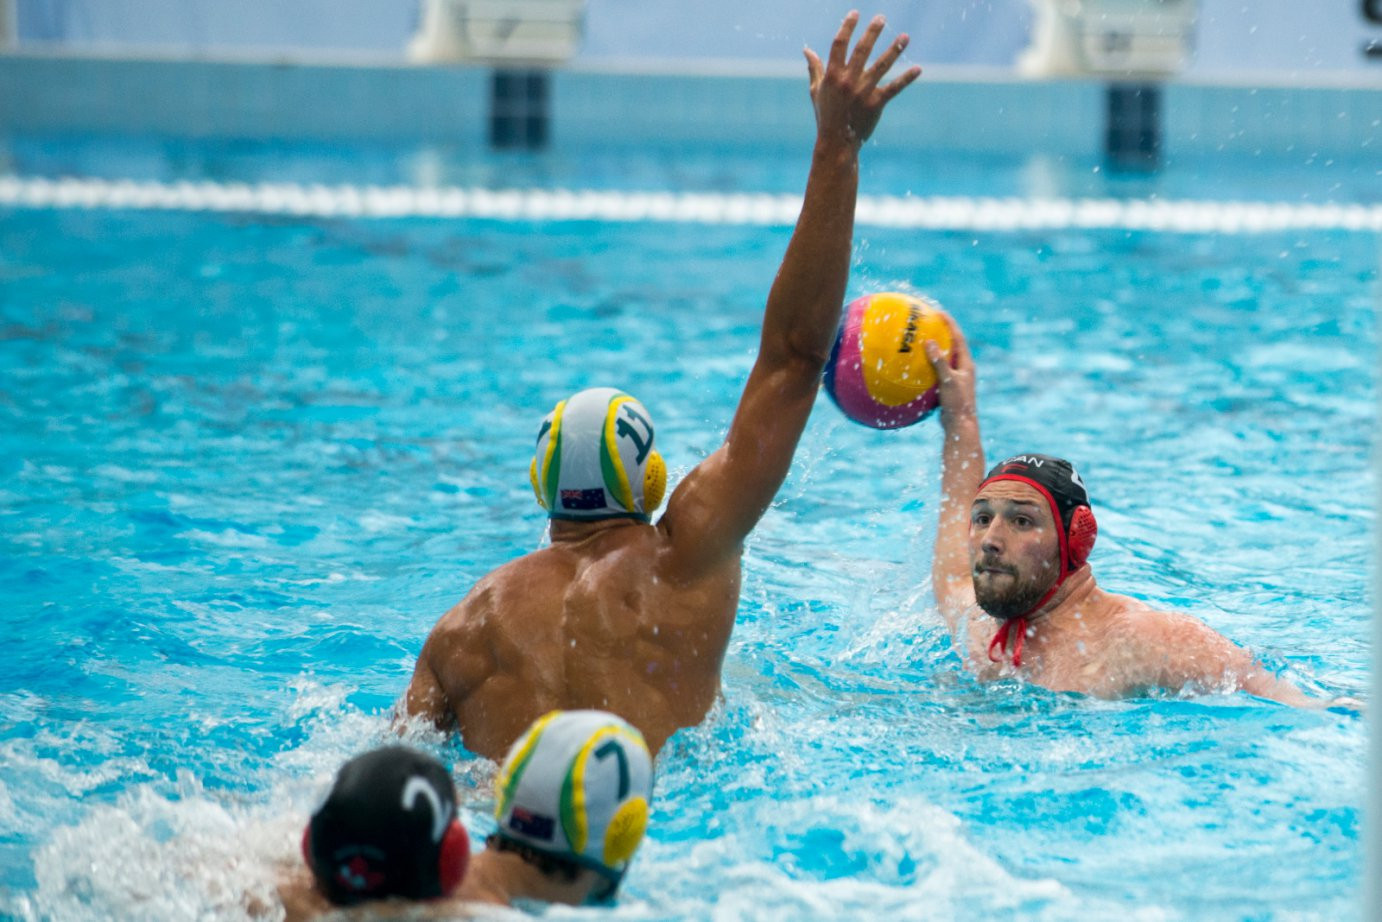 Australia's men failed to grasp the title at the Water Polo World League Intercontinental Cup in Auckland, beaten 9-6 in the final by the United States ©Getty Images